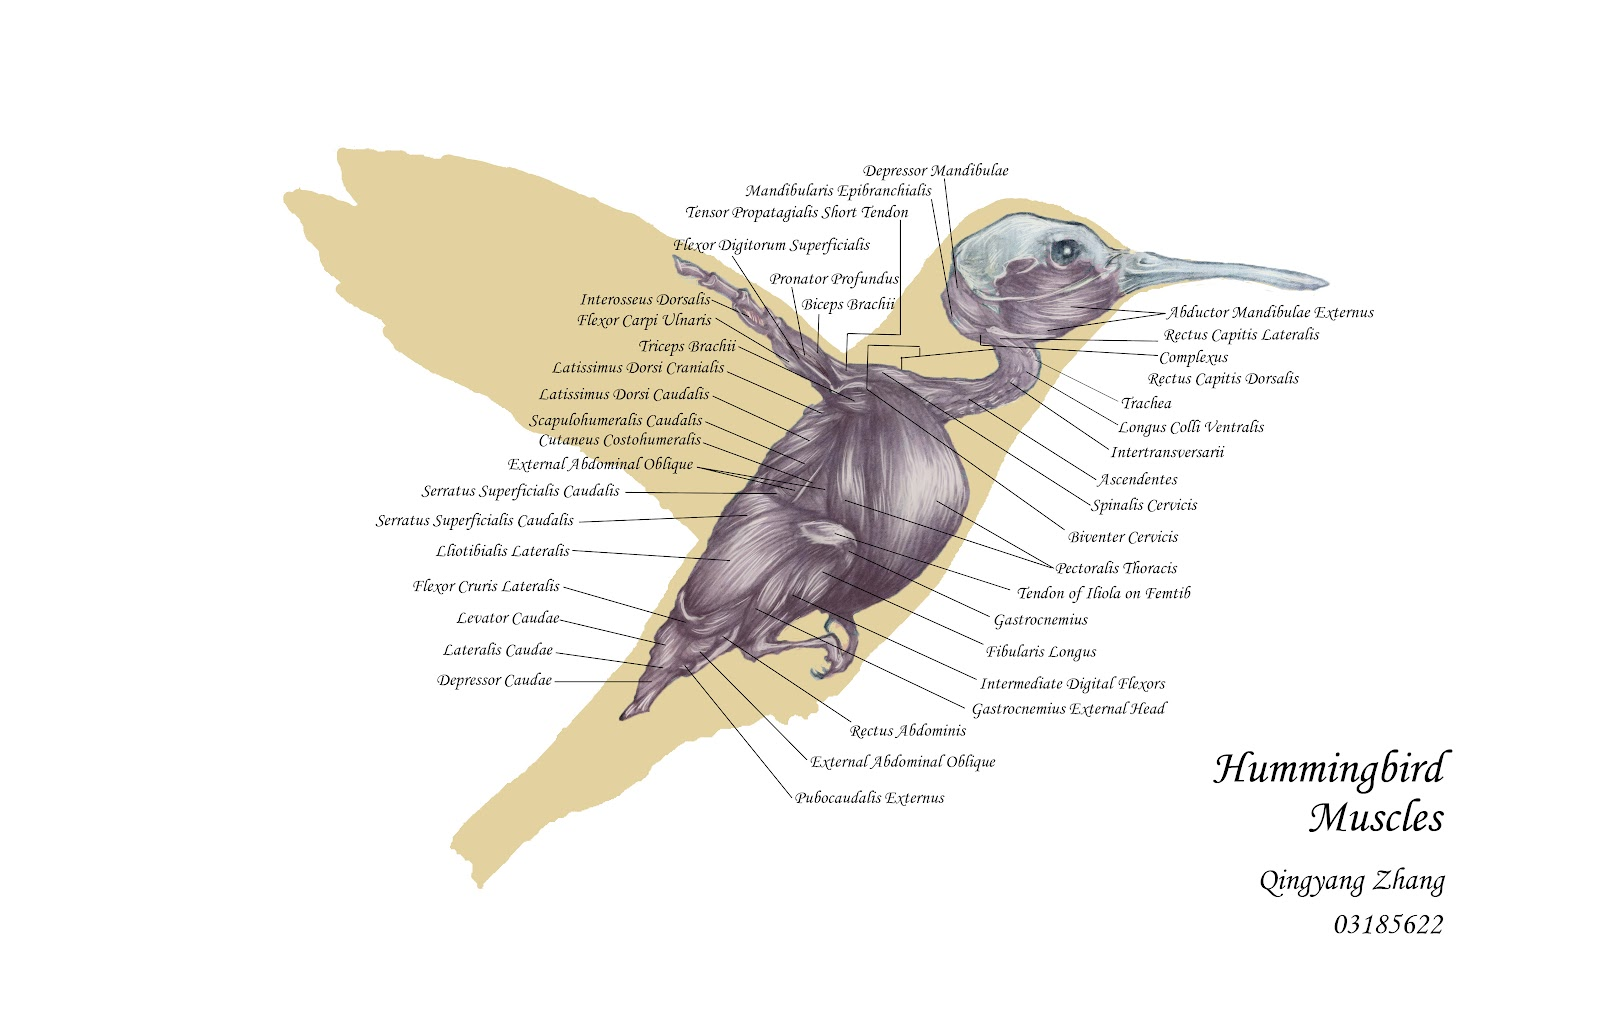 Hummingbird Muscle Anatomy